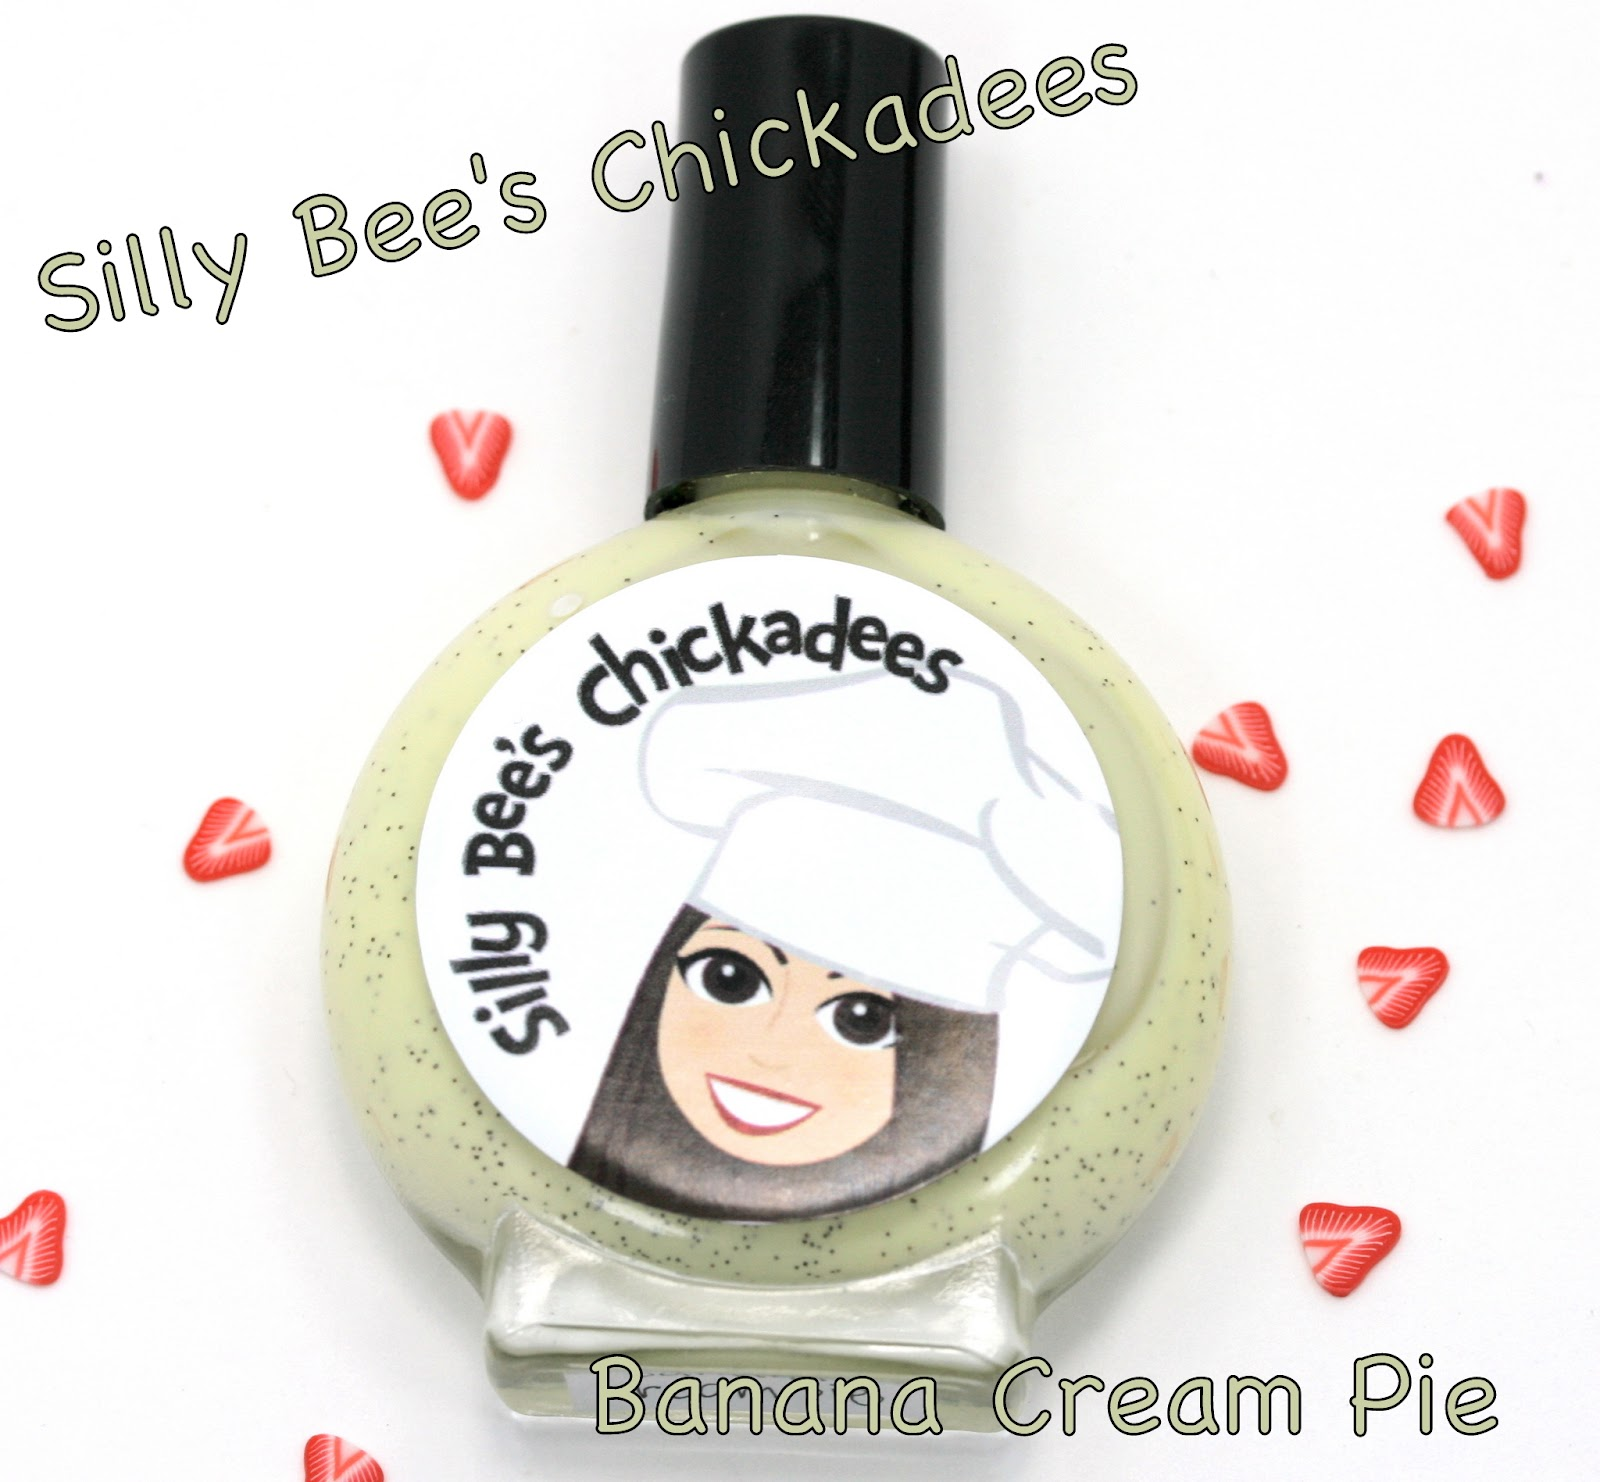 Silly Bee's Chickadees May Pie of the Month Banana Cream Pie